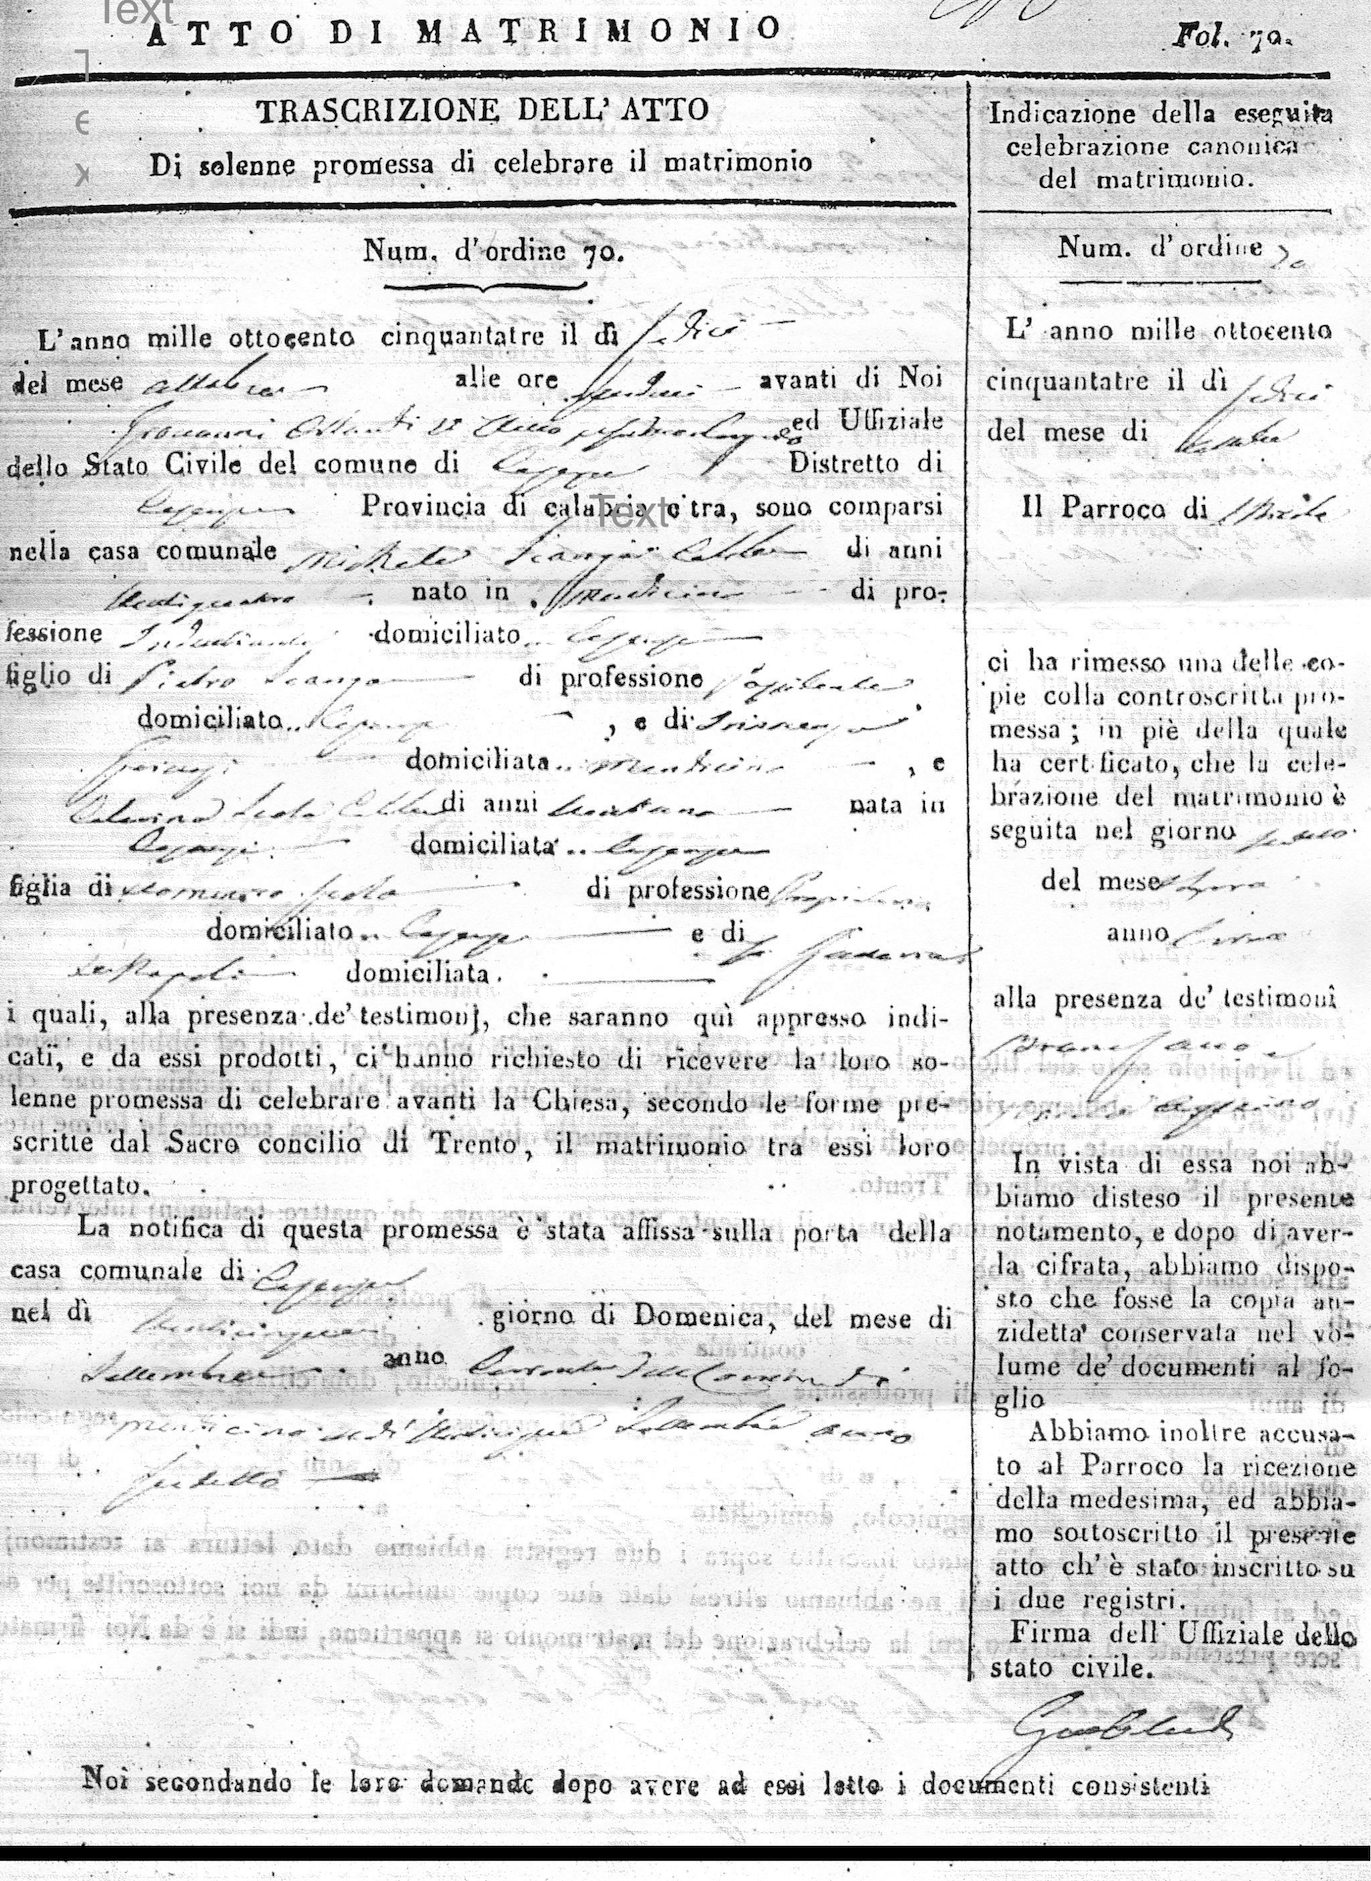 marriage cert caterina scola michael scanza pg 1.png